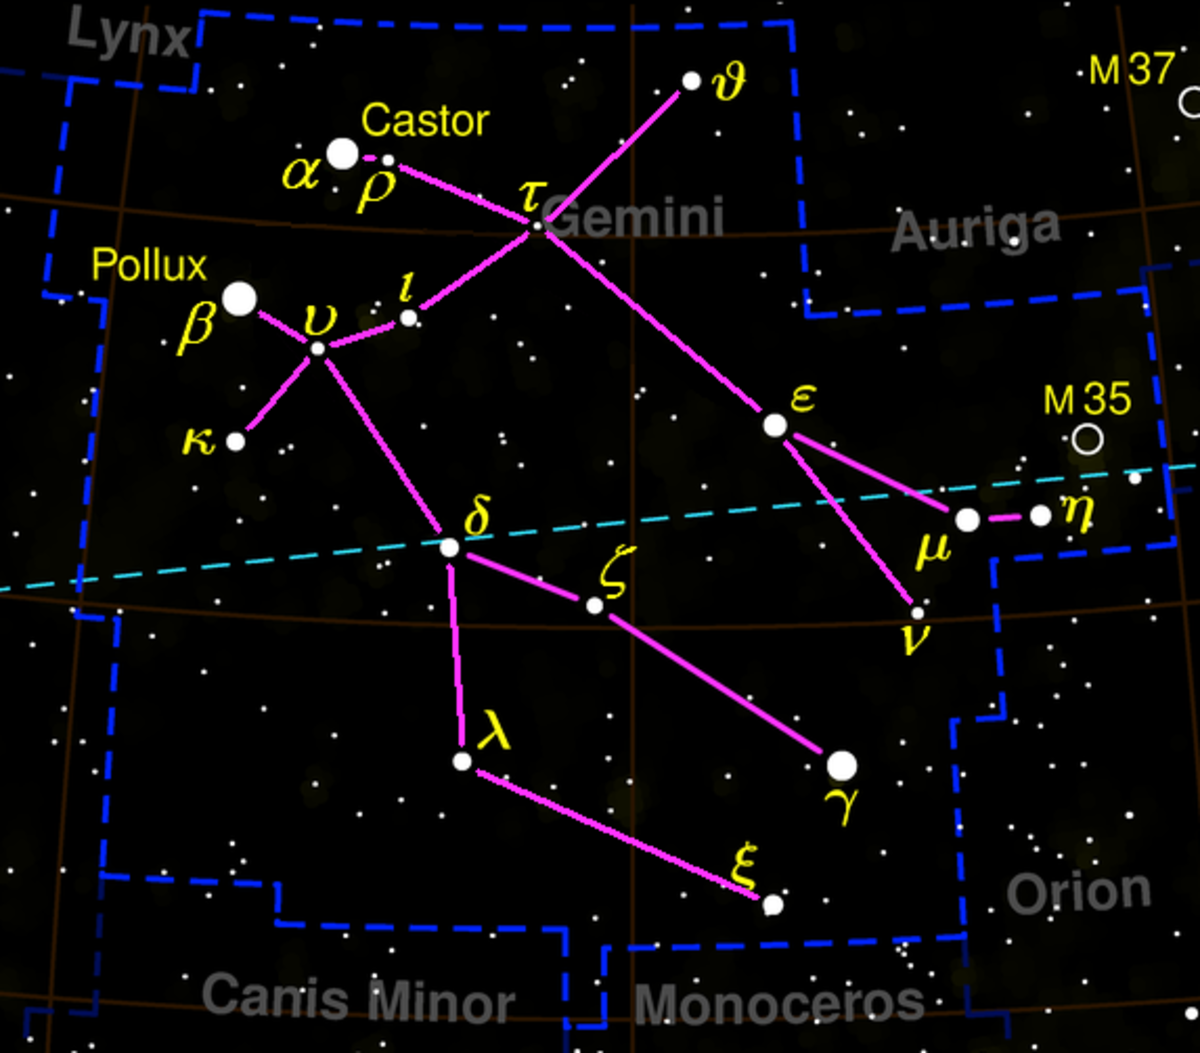 How to Identify the Constellation Gemini in the Sky